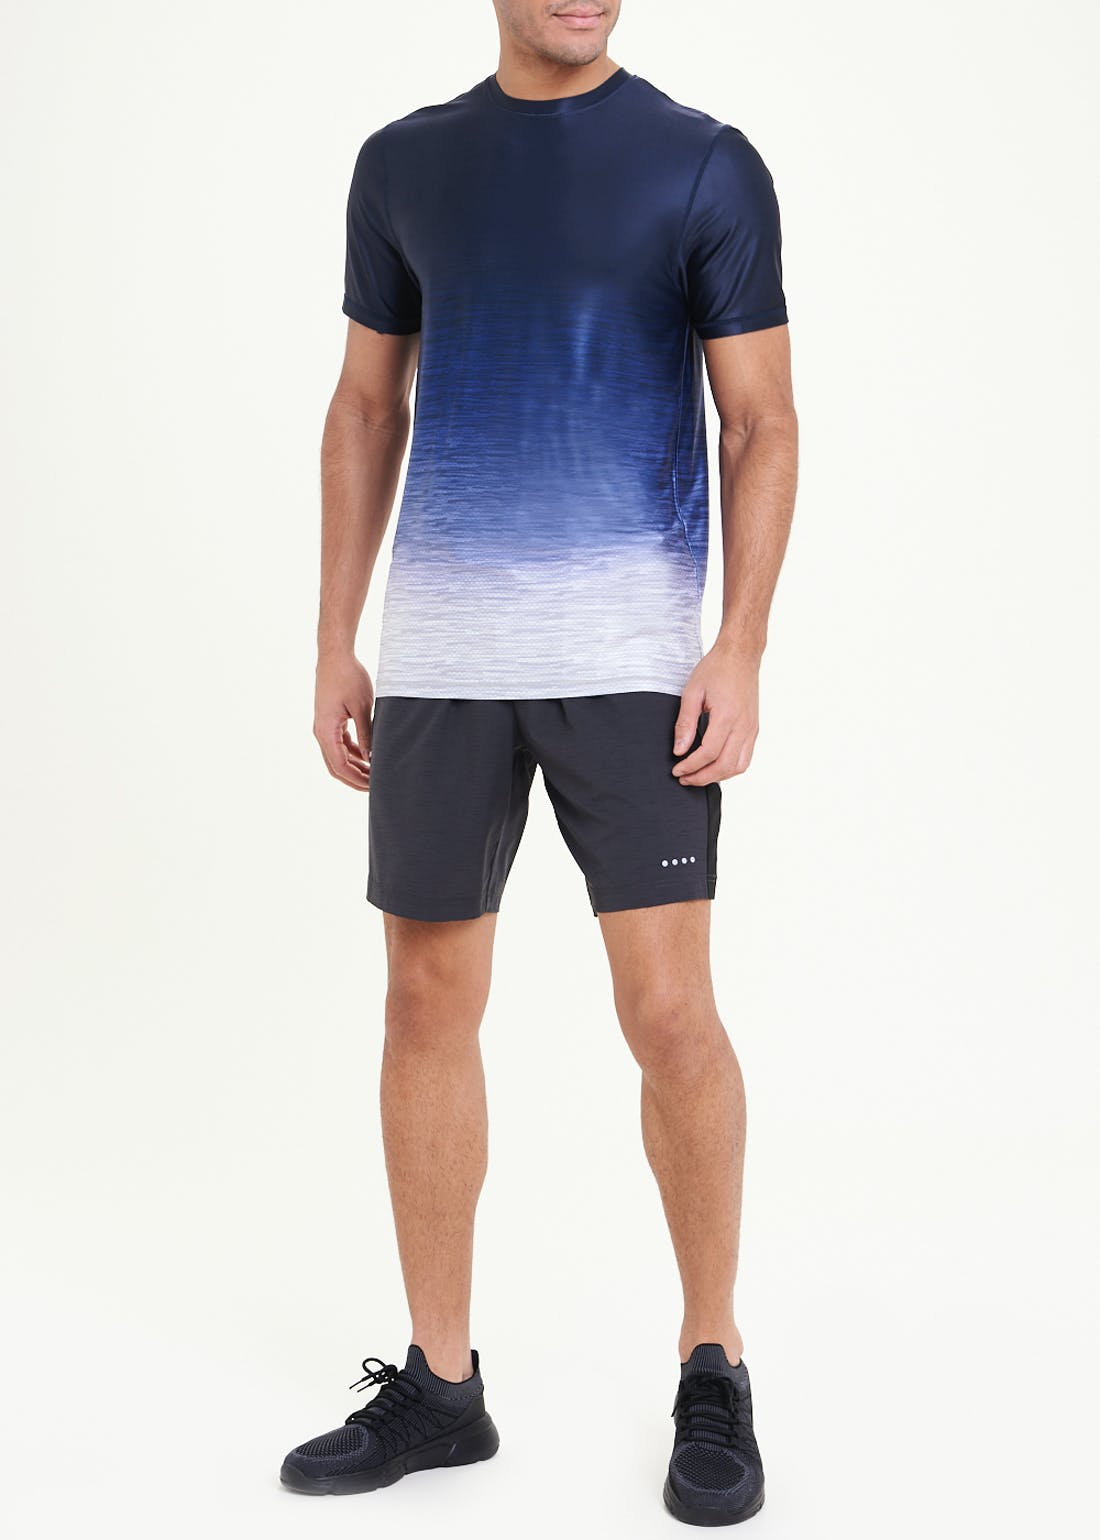 Souluxe Charcoal Woven Gym Shorts